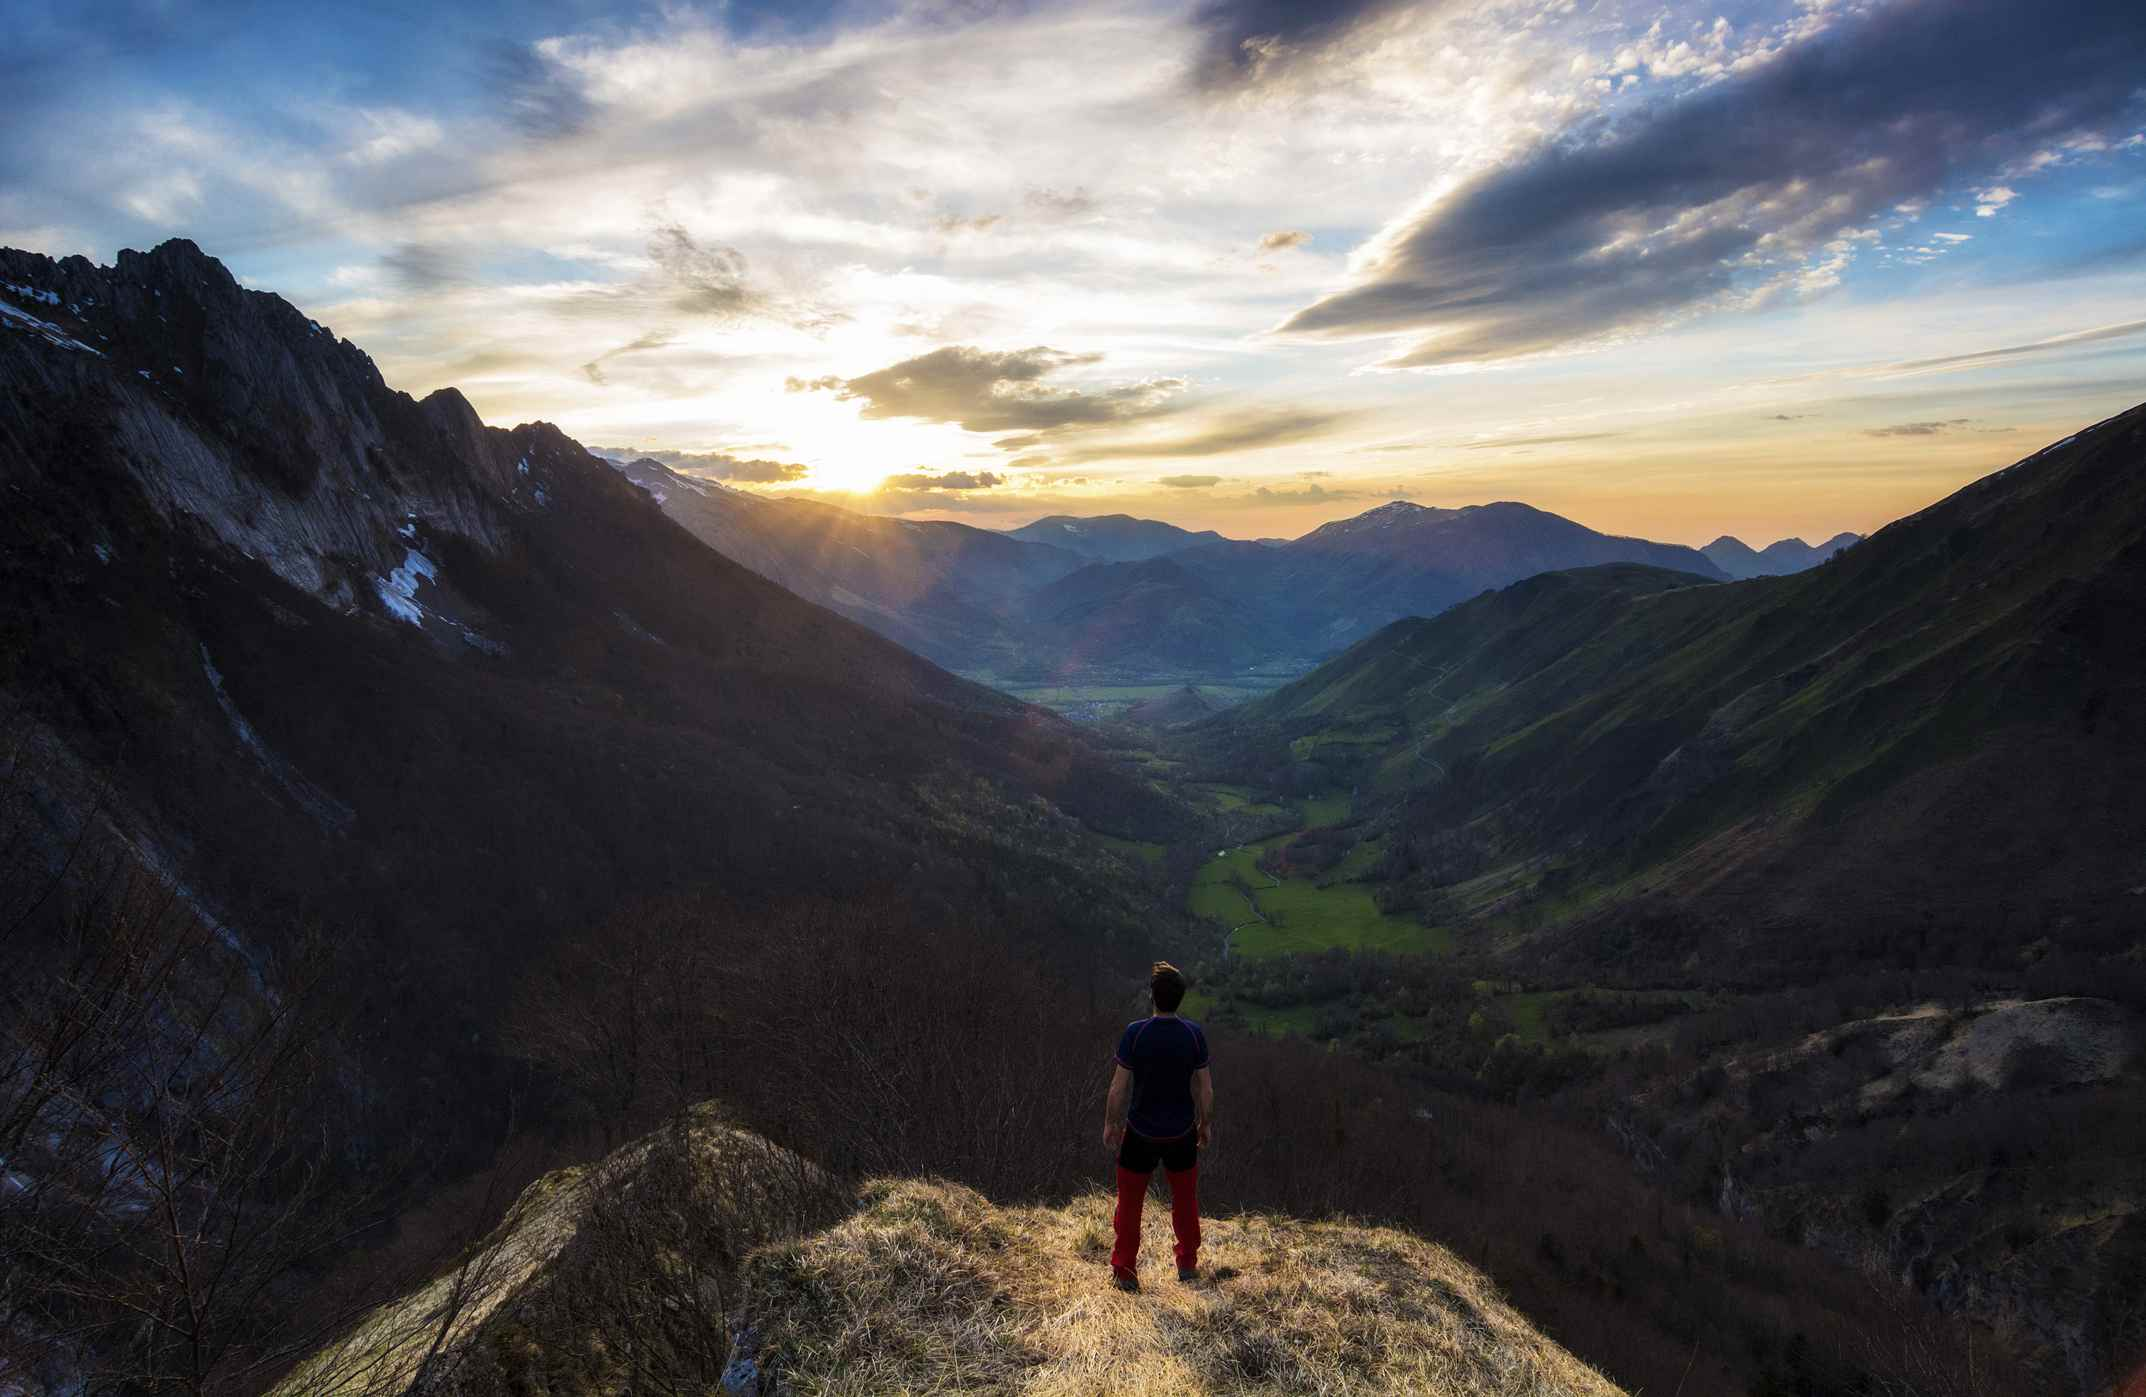 A man stands on a hill and looks out over a valley at sunset